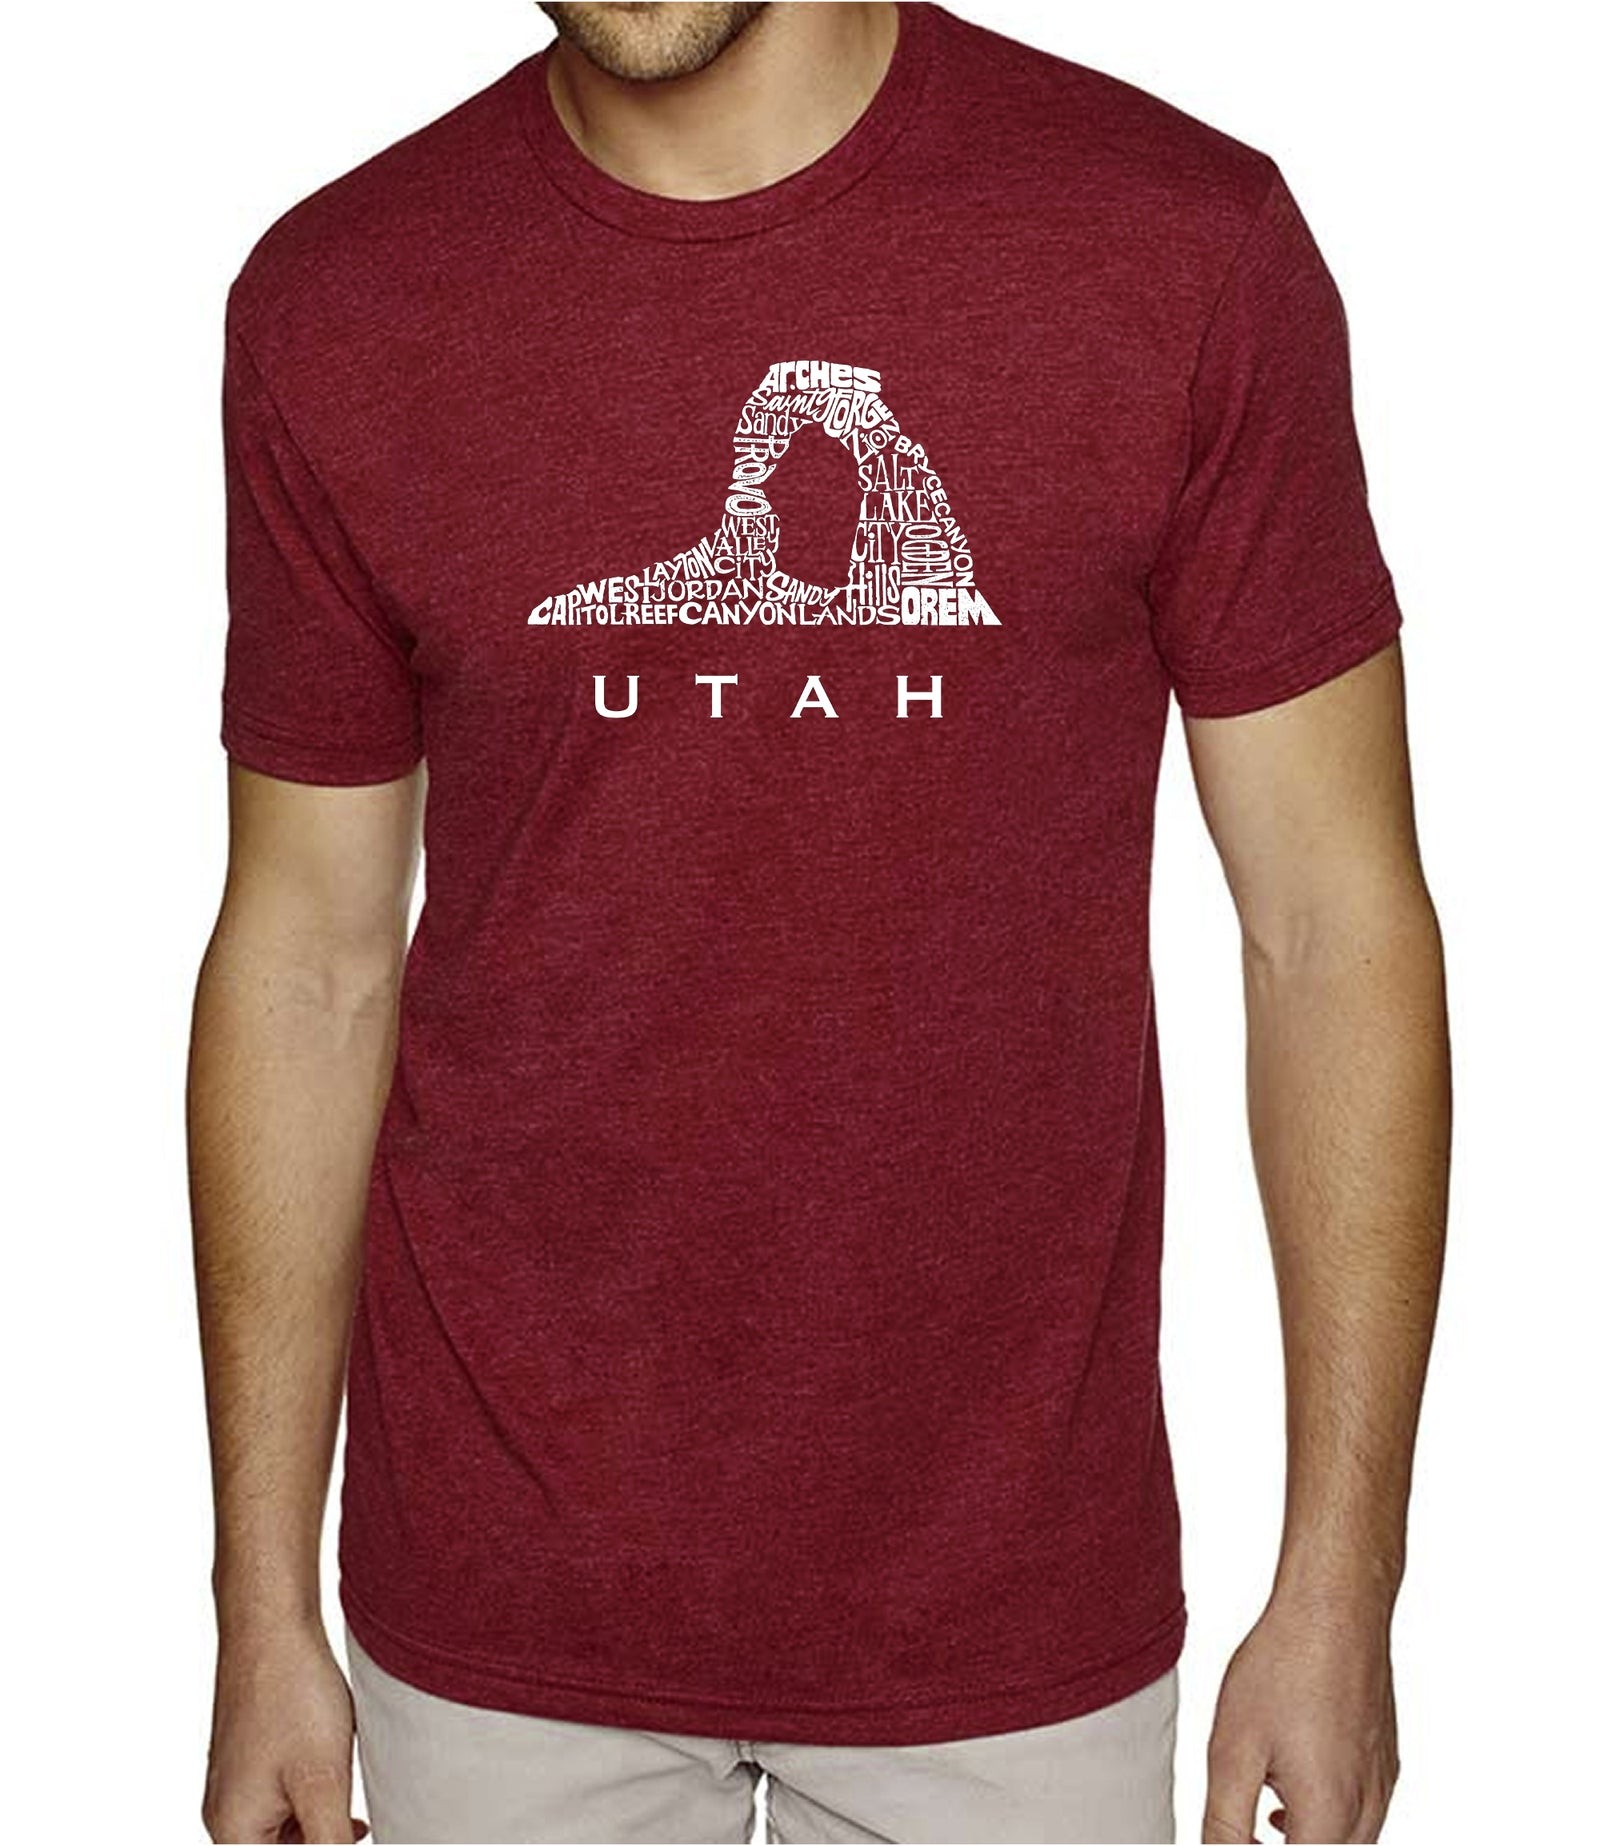 Men's Premium Blend Word Art T-shirt - Utah